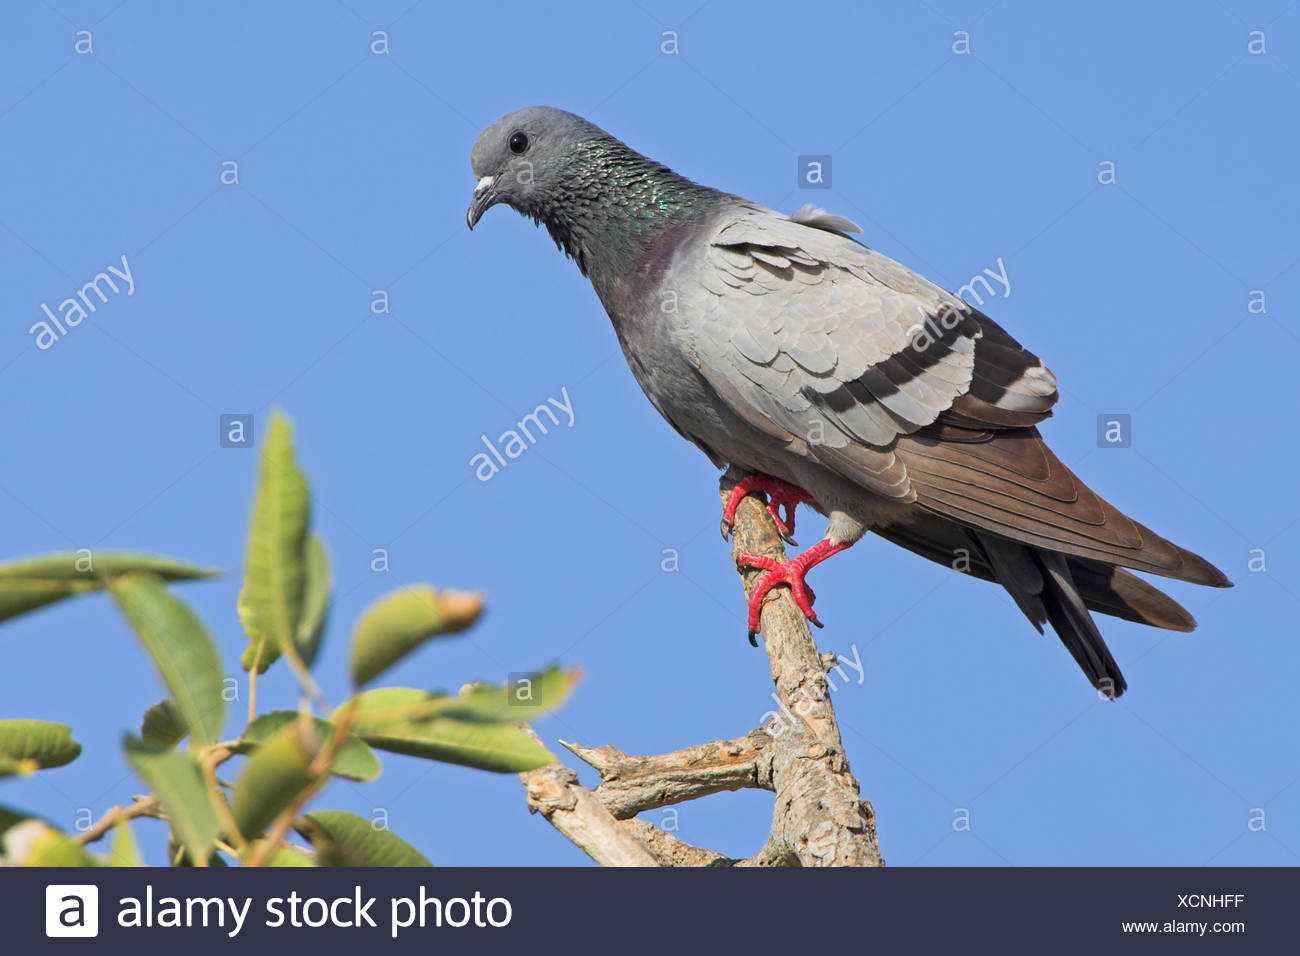 Rock Dove (Columba livia) perching on a twig, low angle view - Stock Image